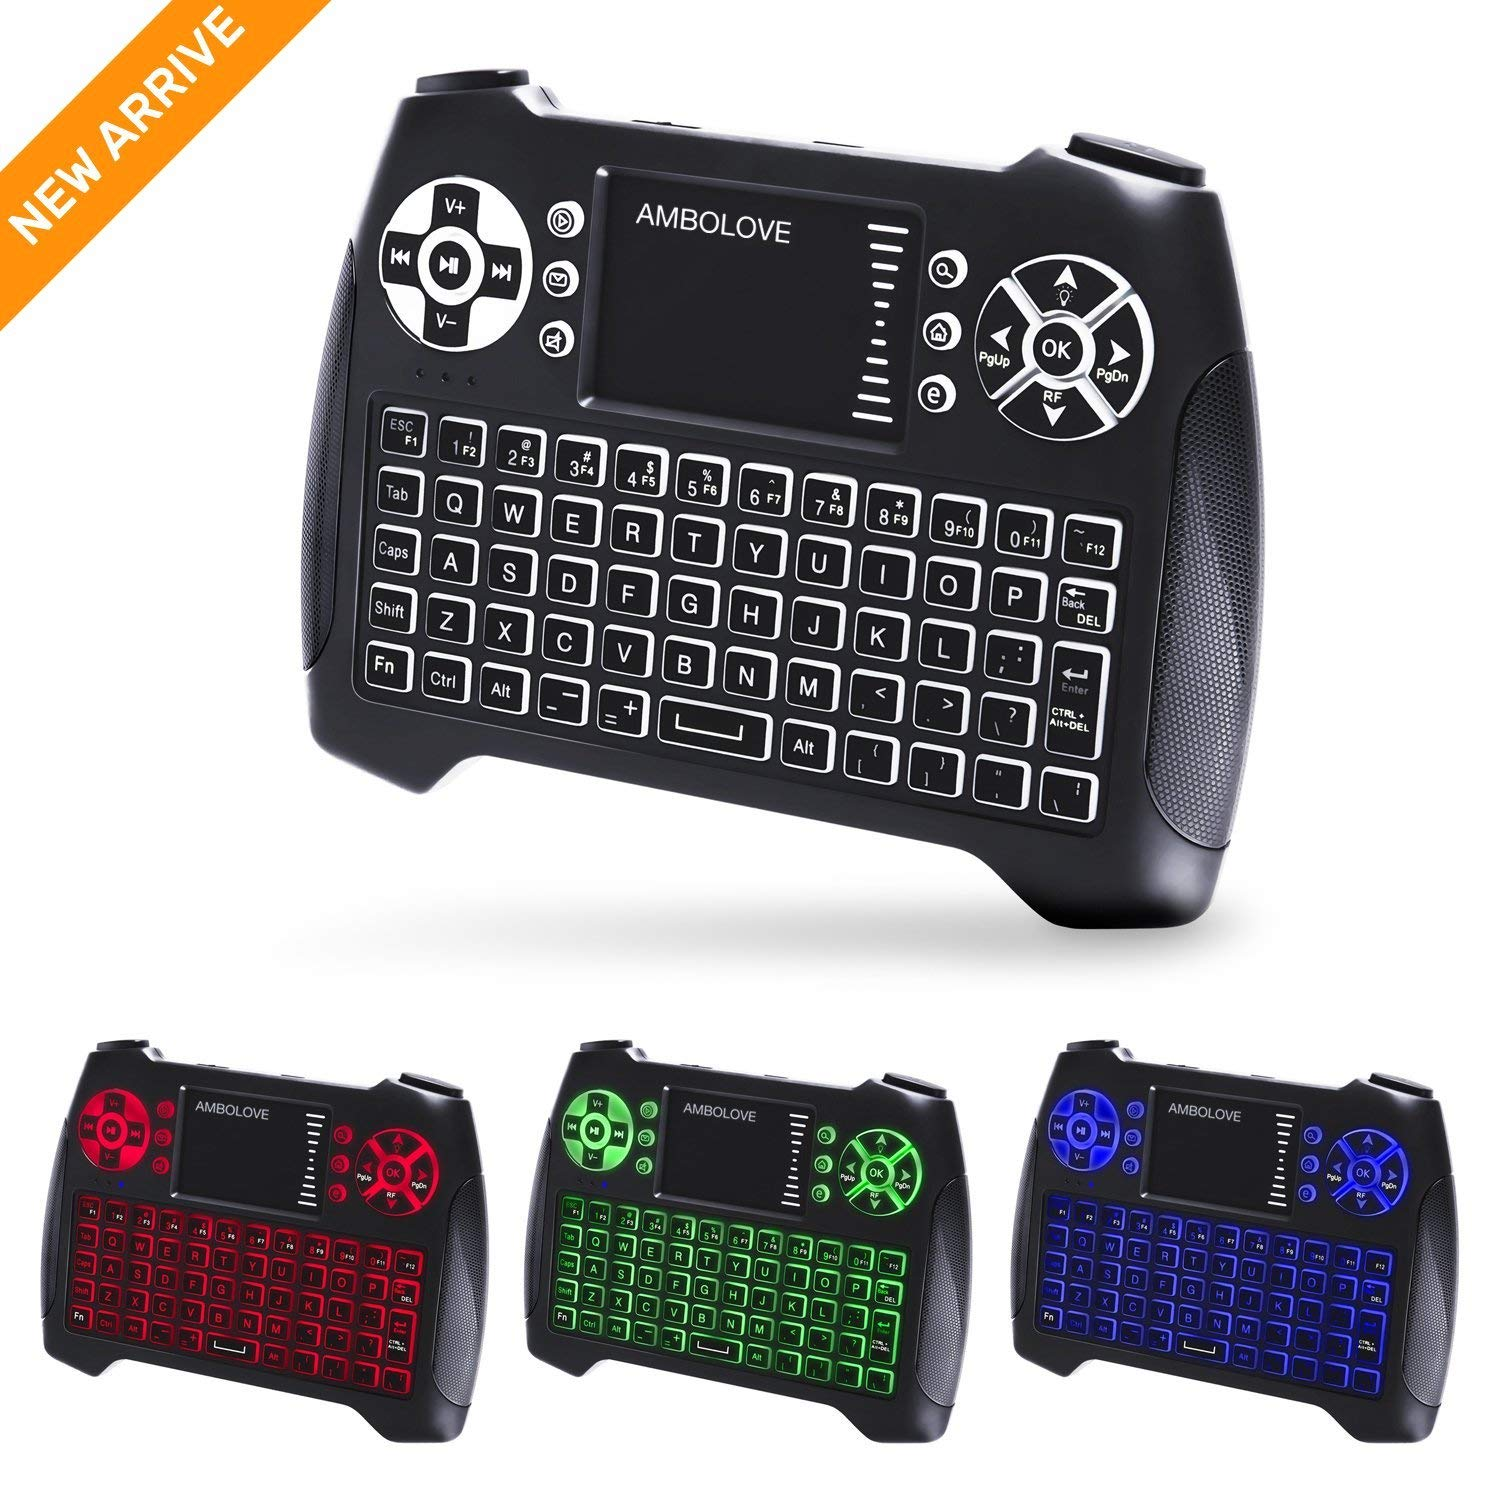 HTPC Backlit Wireless Mini Keyboard with Touchpad Mouse and Multimedia Keys 2.4Ghz USB Rechargable Handheld Remote Control Keyboard for PC Android TV Box,Smart TV X-BOX